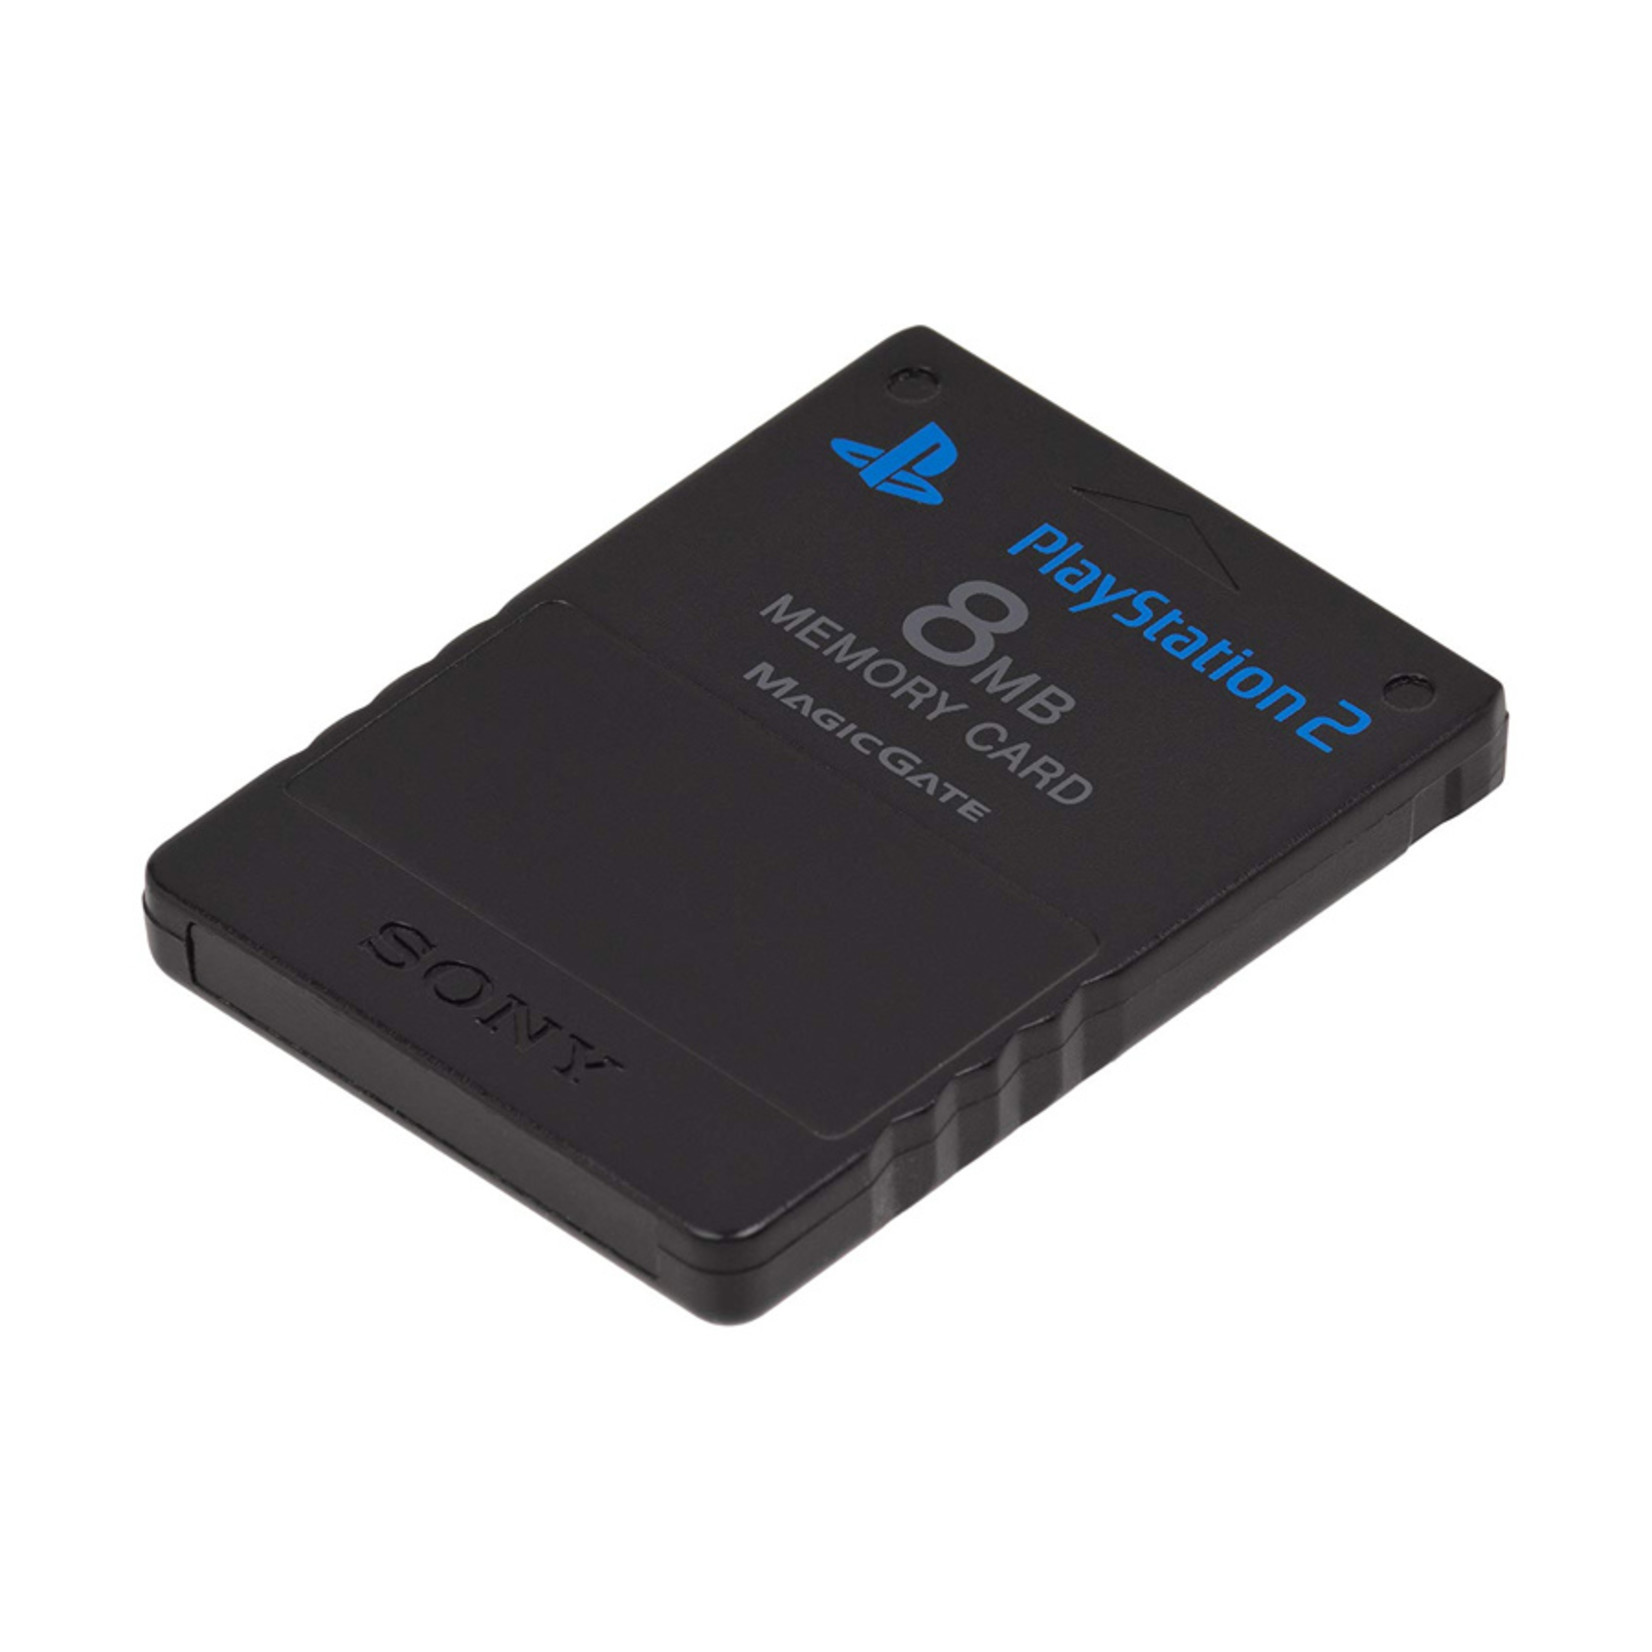 Playstation 2 - 8MB Memory Card - Zwart